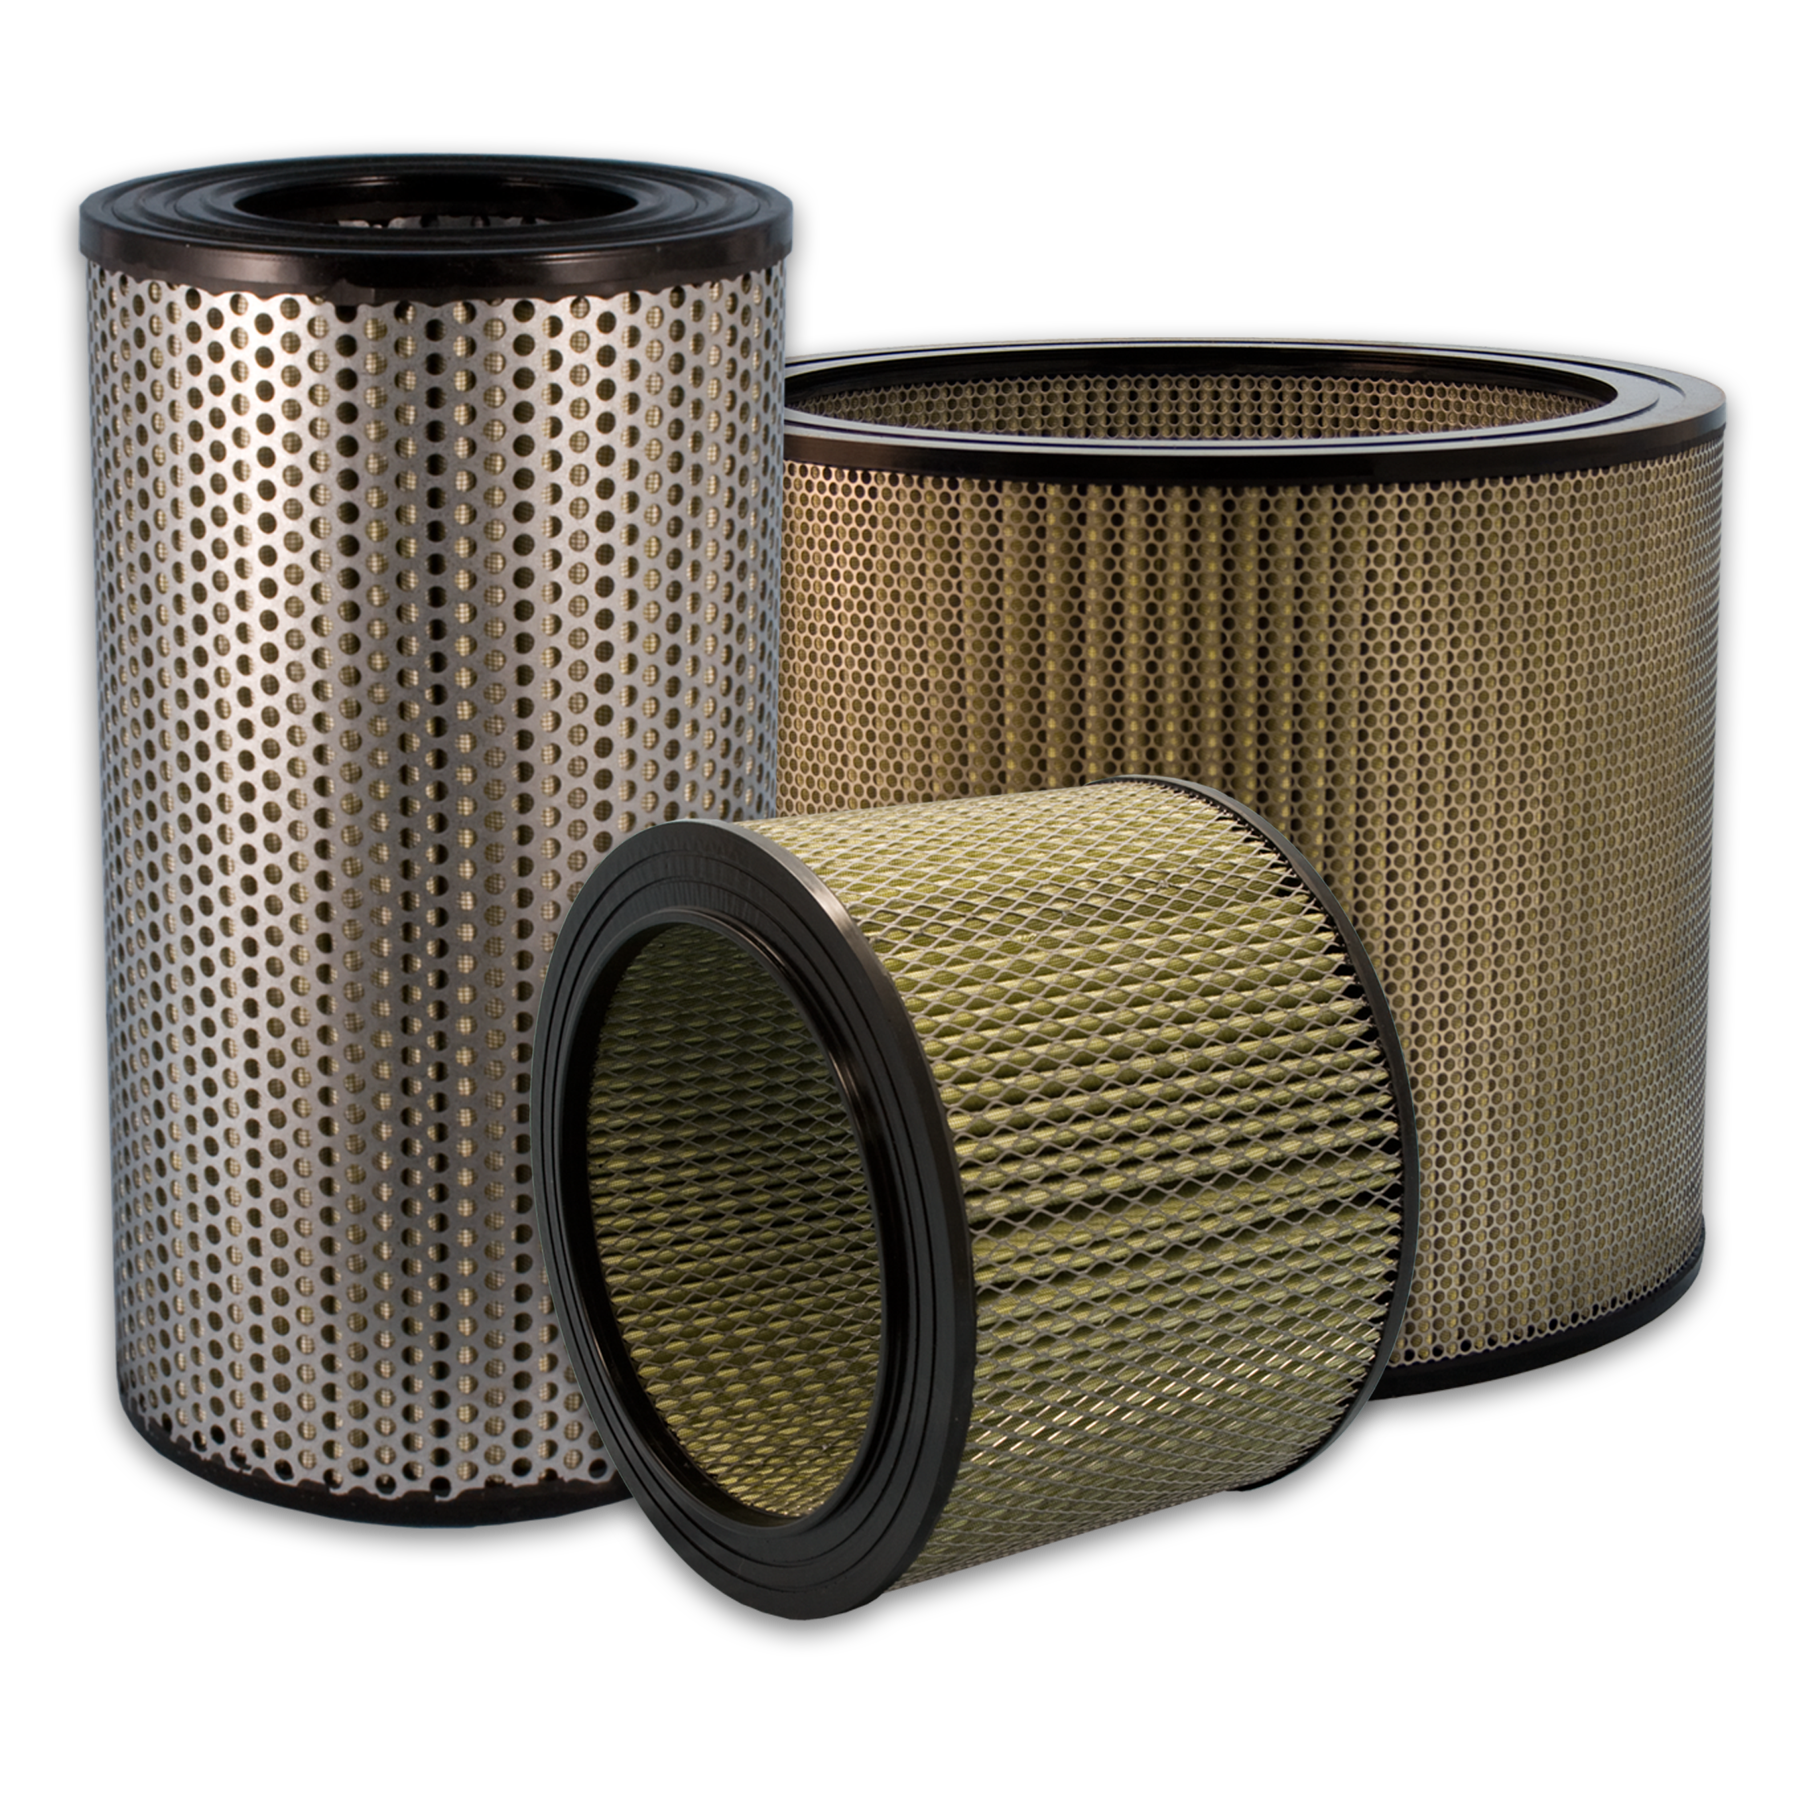 Industrial mist eliminator filters & Coalescing filter elements from Sidco Filter to replace Shawndra Sparks, Airmaze, Consler Graver, Dollinger, Endustra, Filter Engineering, IFM, Ingersoll Rand, NAFCO, Royal, Stokes, and Sunshine filter elements.